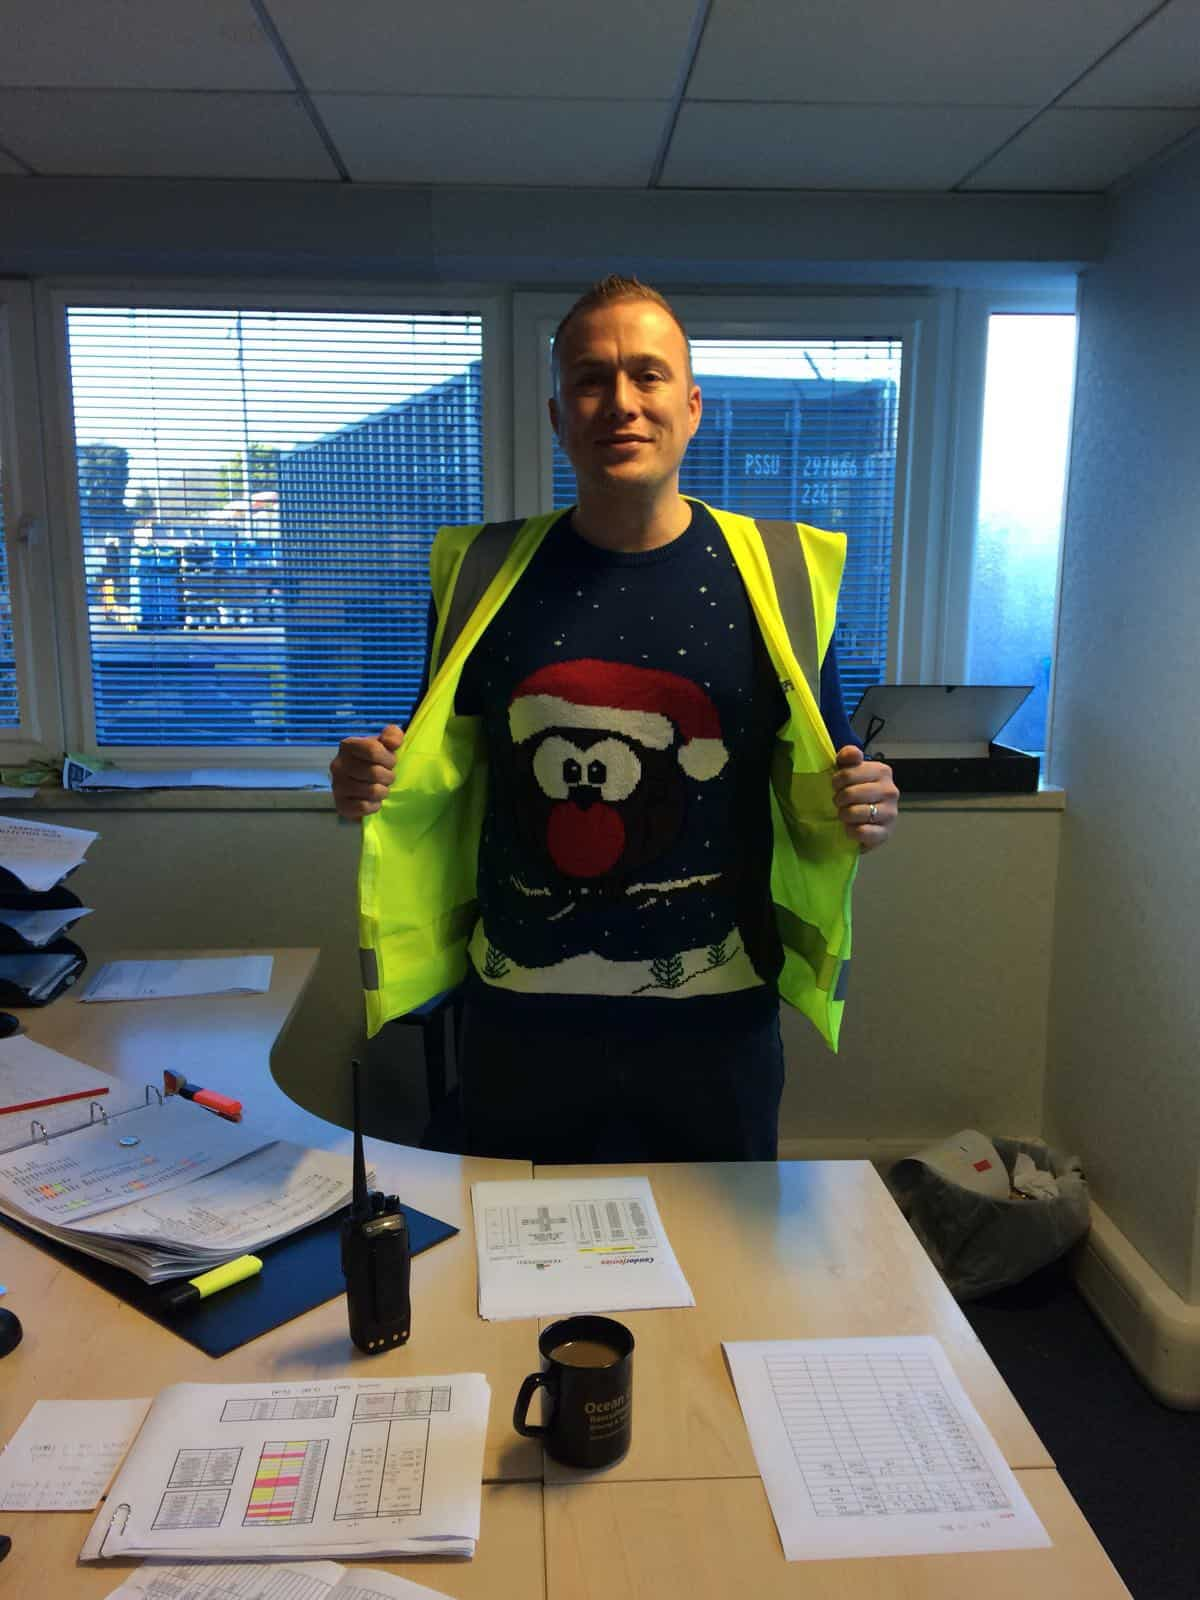 Festive jumper day for Save the Children